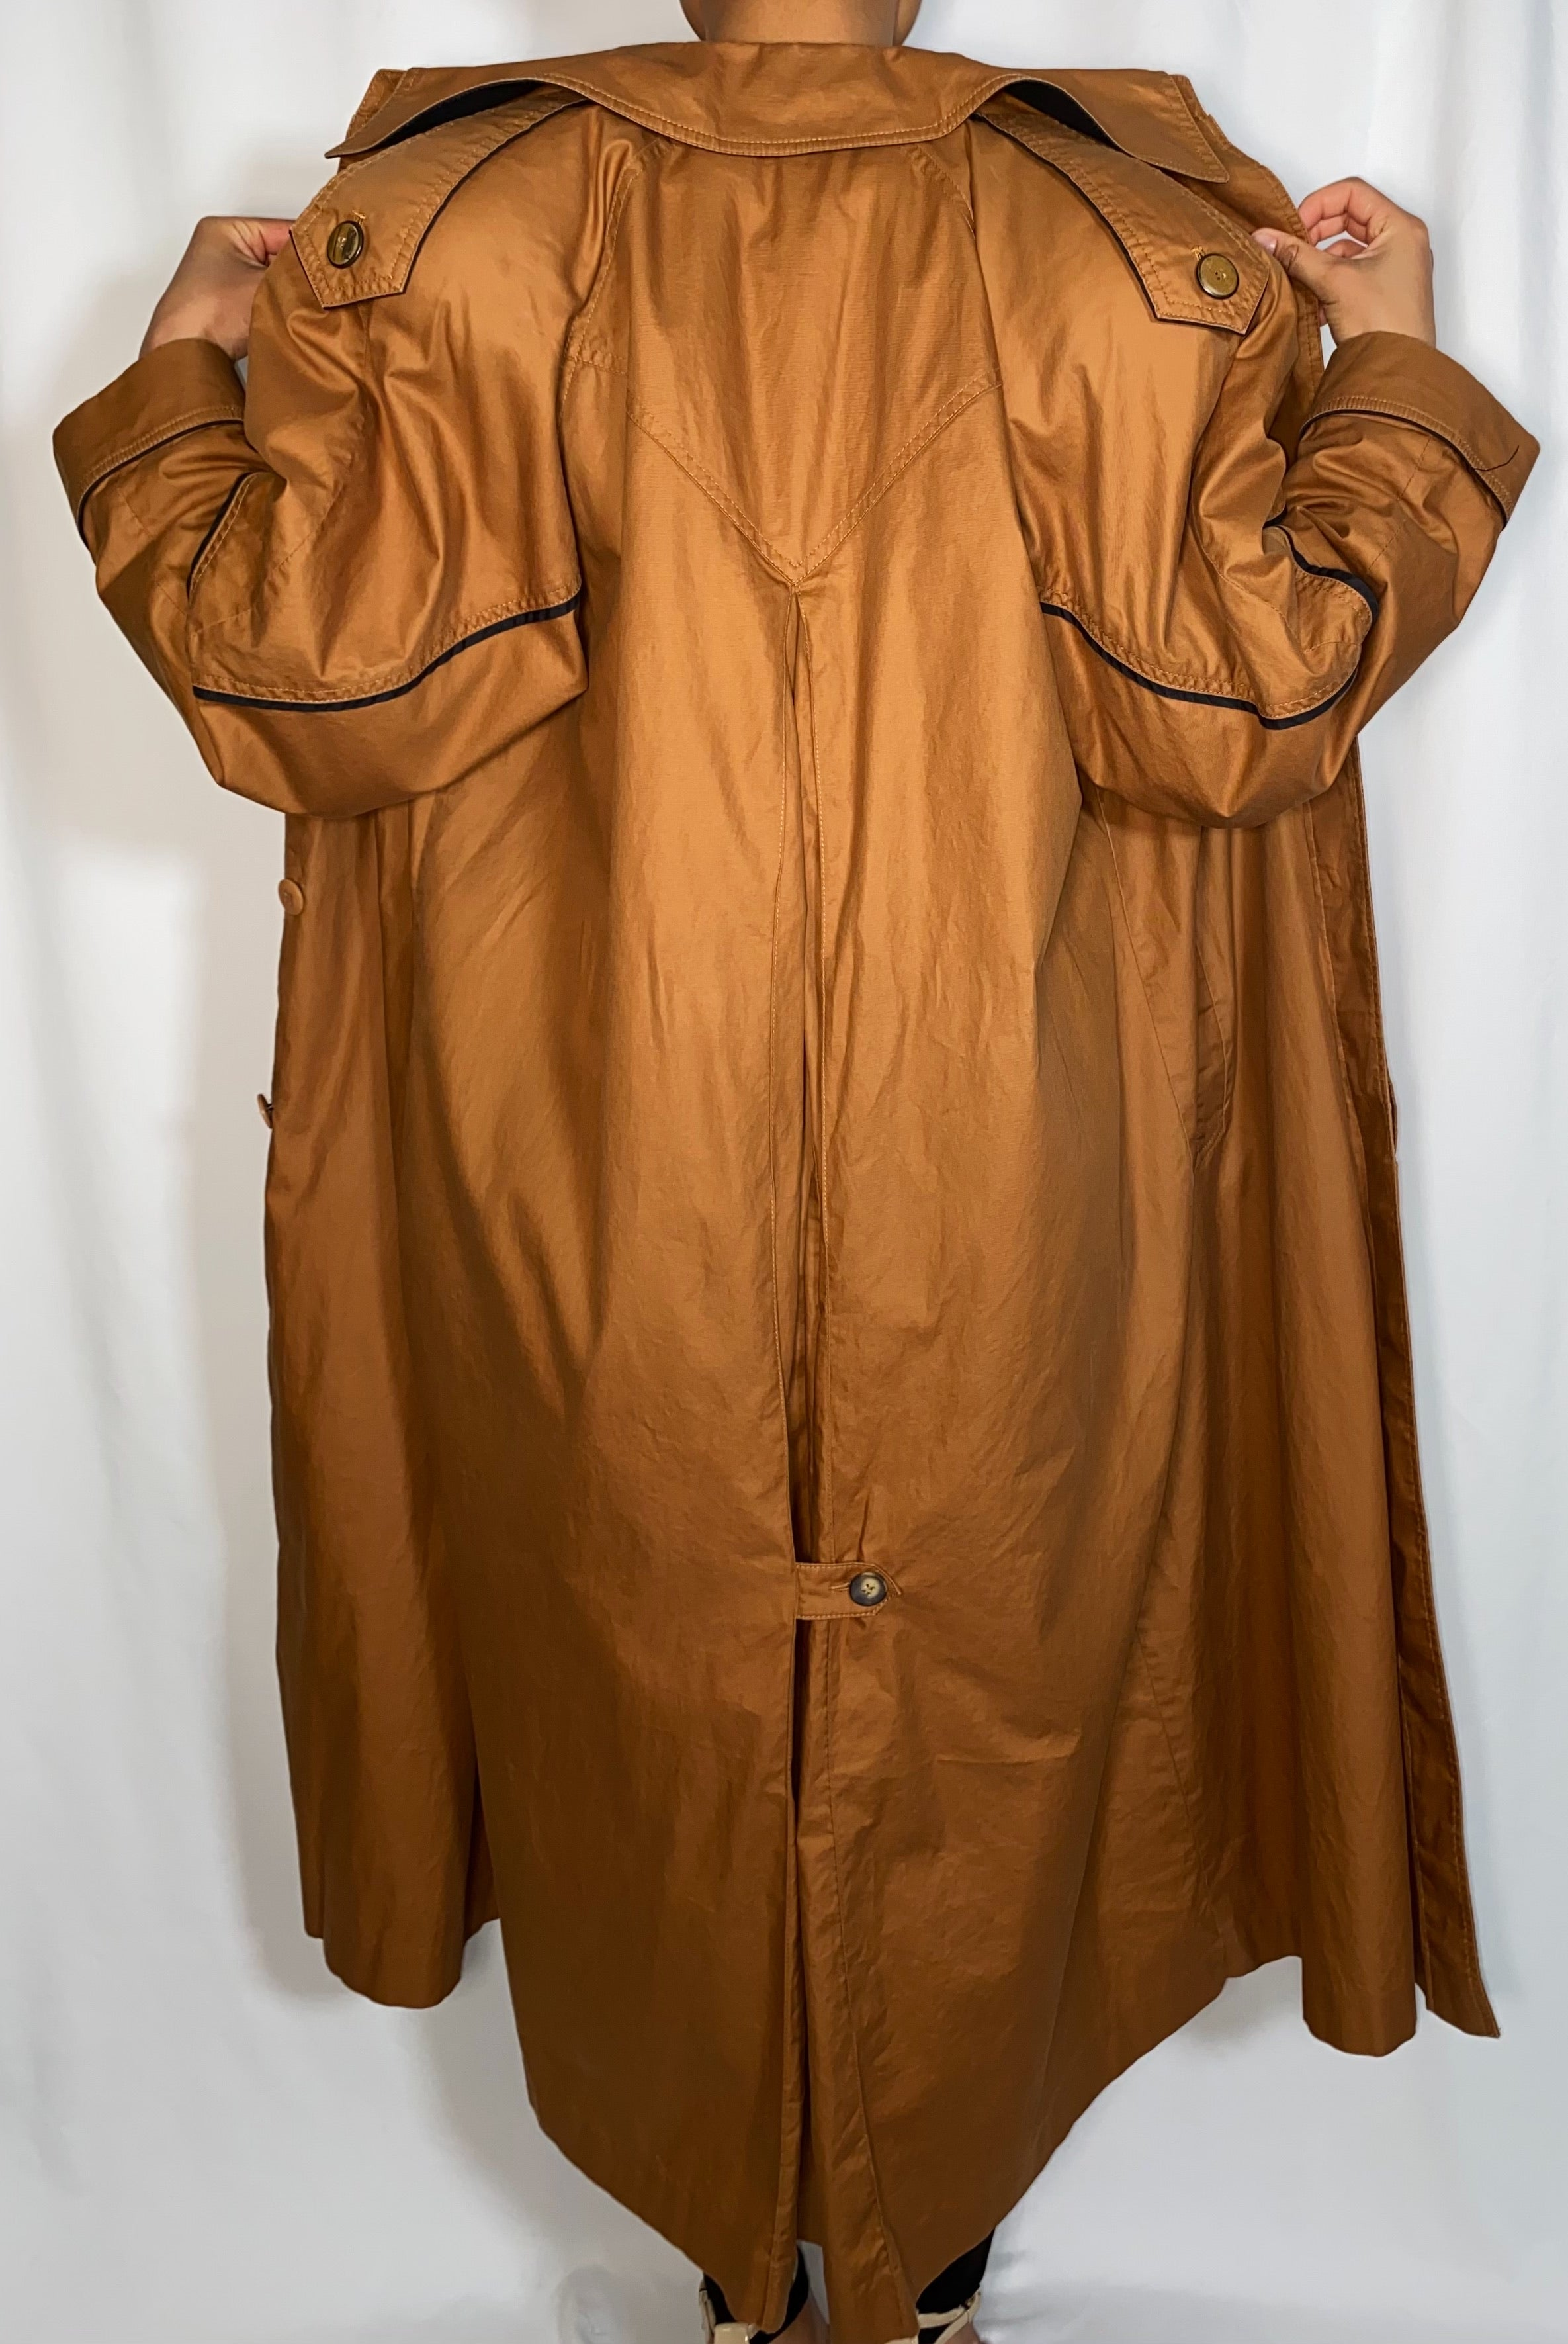 Vintage Fleet Street Trench Coat (size 10)